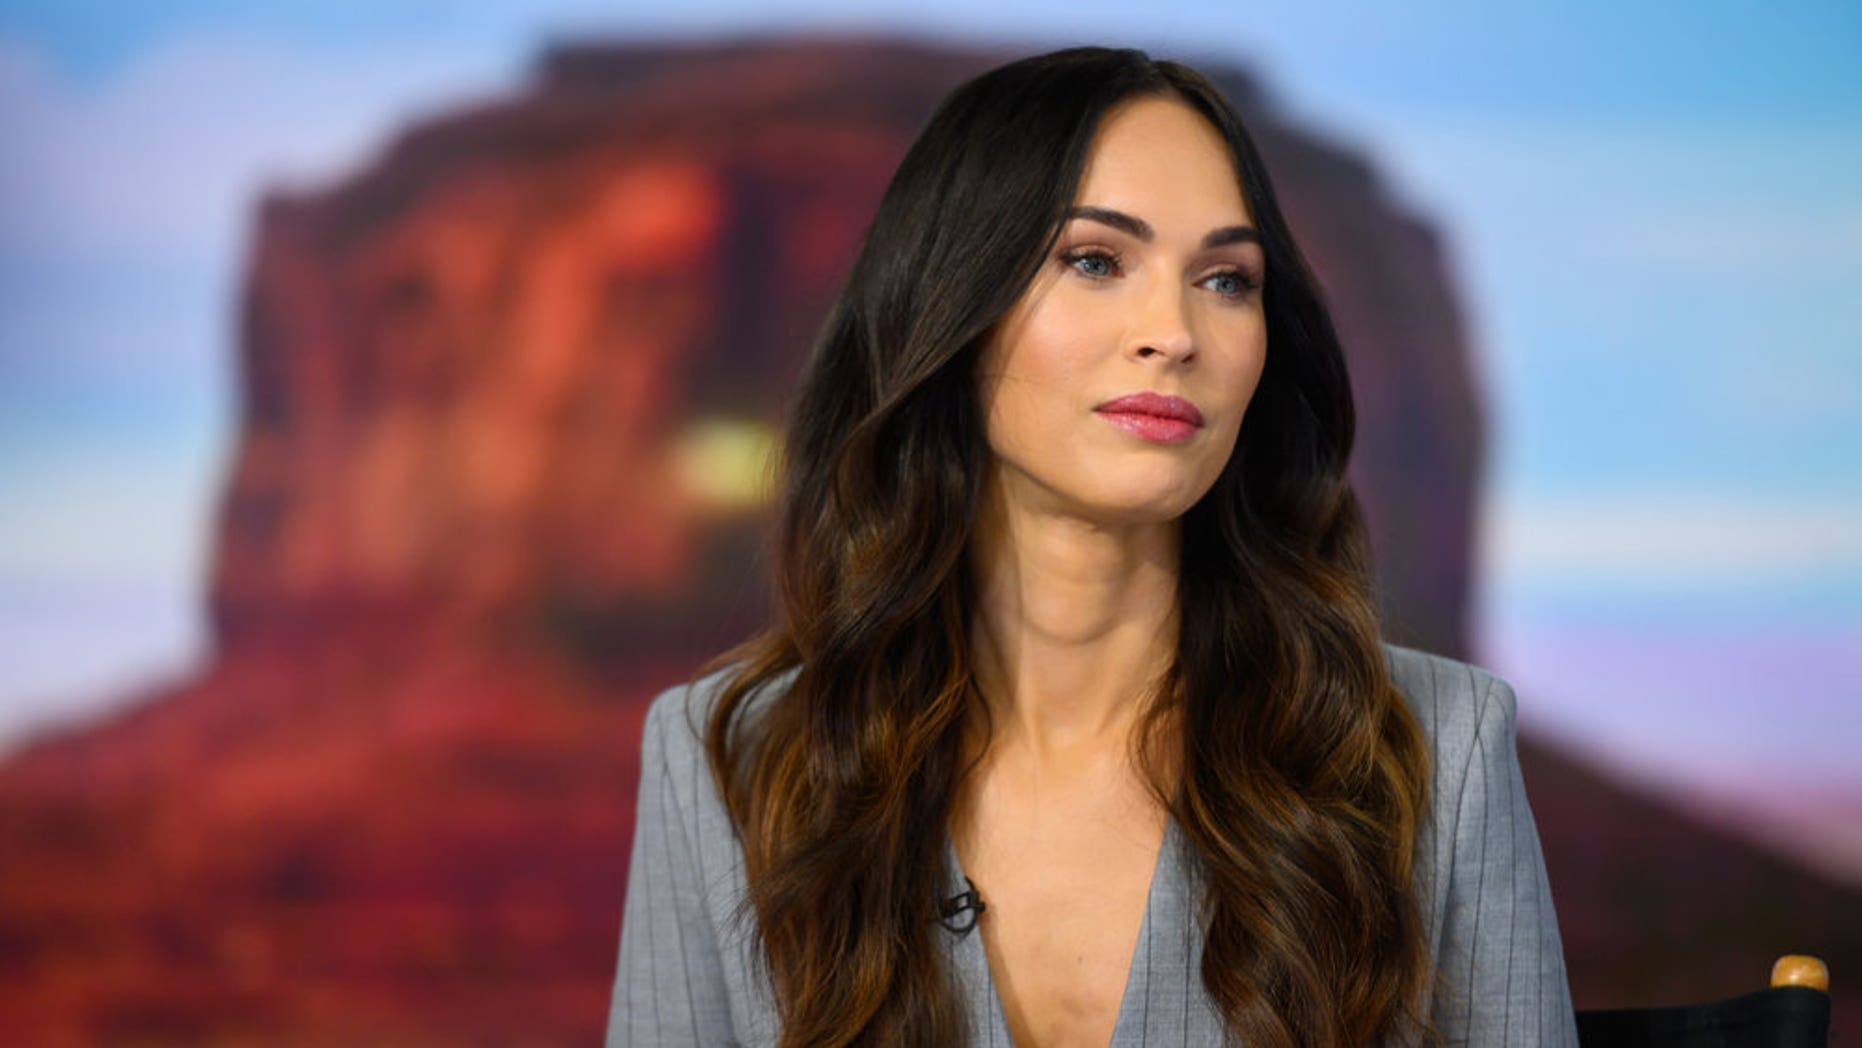 Megan Fox said she's keeping her #MeToo stories to herself.